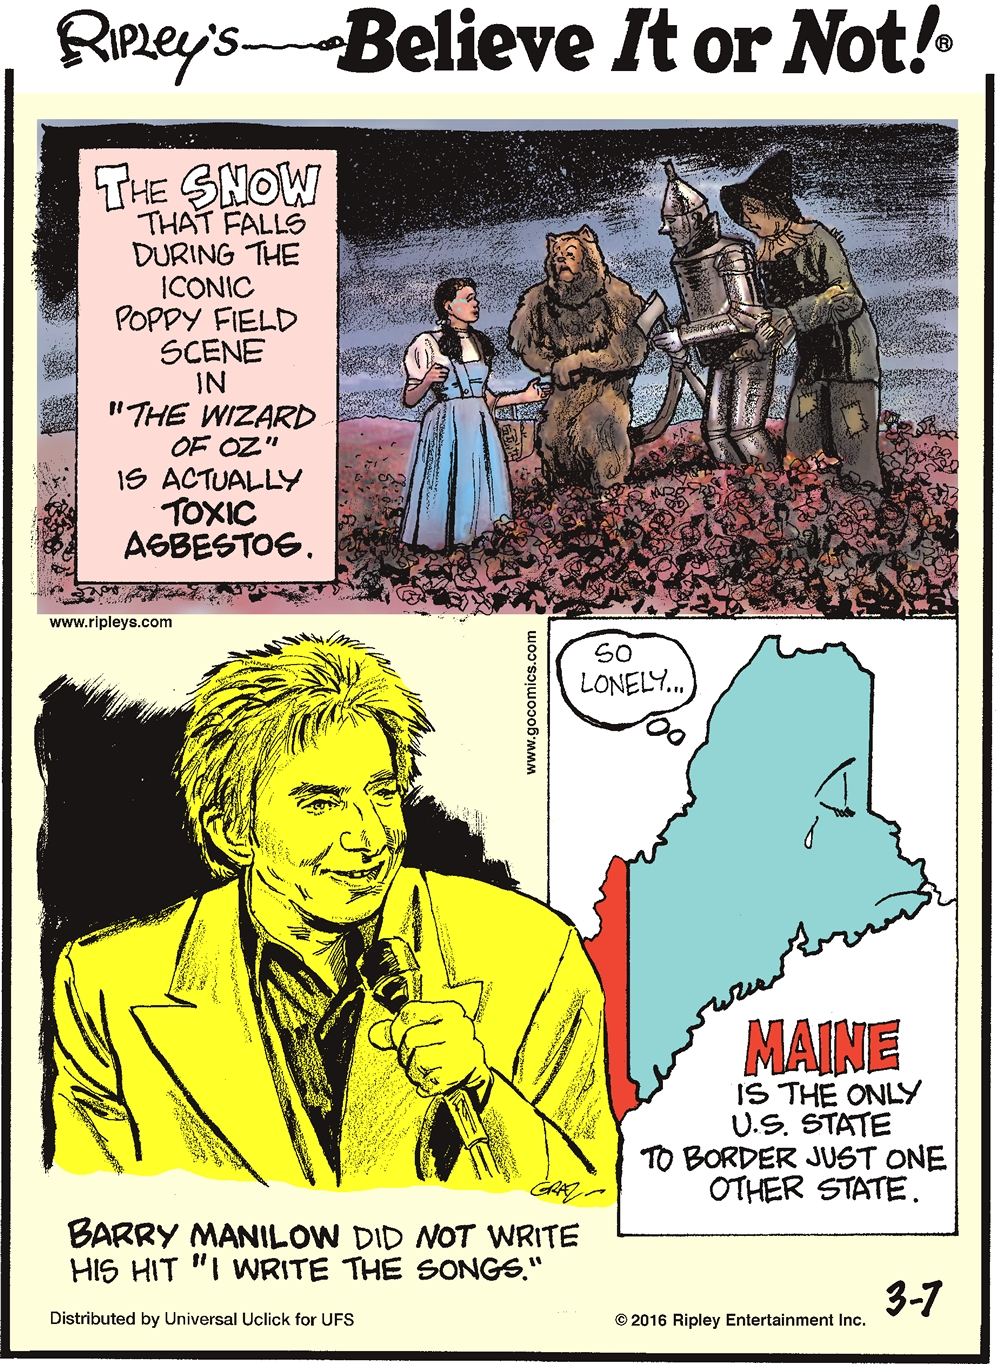 "The snow that falls during the iconic poppy field scene in ""The Wizard of Oz"" is actually toxic asbestos. -------------------- Maine is the only US state to border just one other state. -------------------- Barry Manilow did not write his hit ""I Write the Songs""."